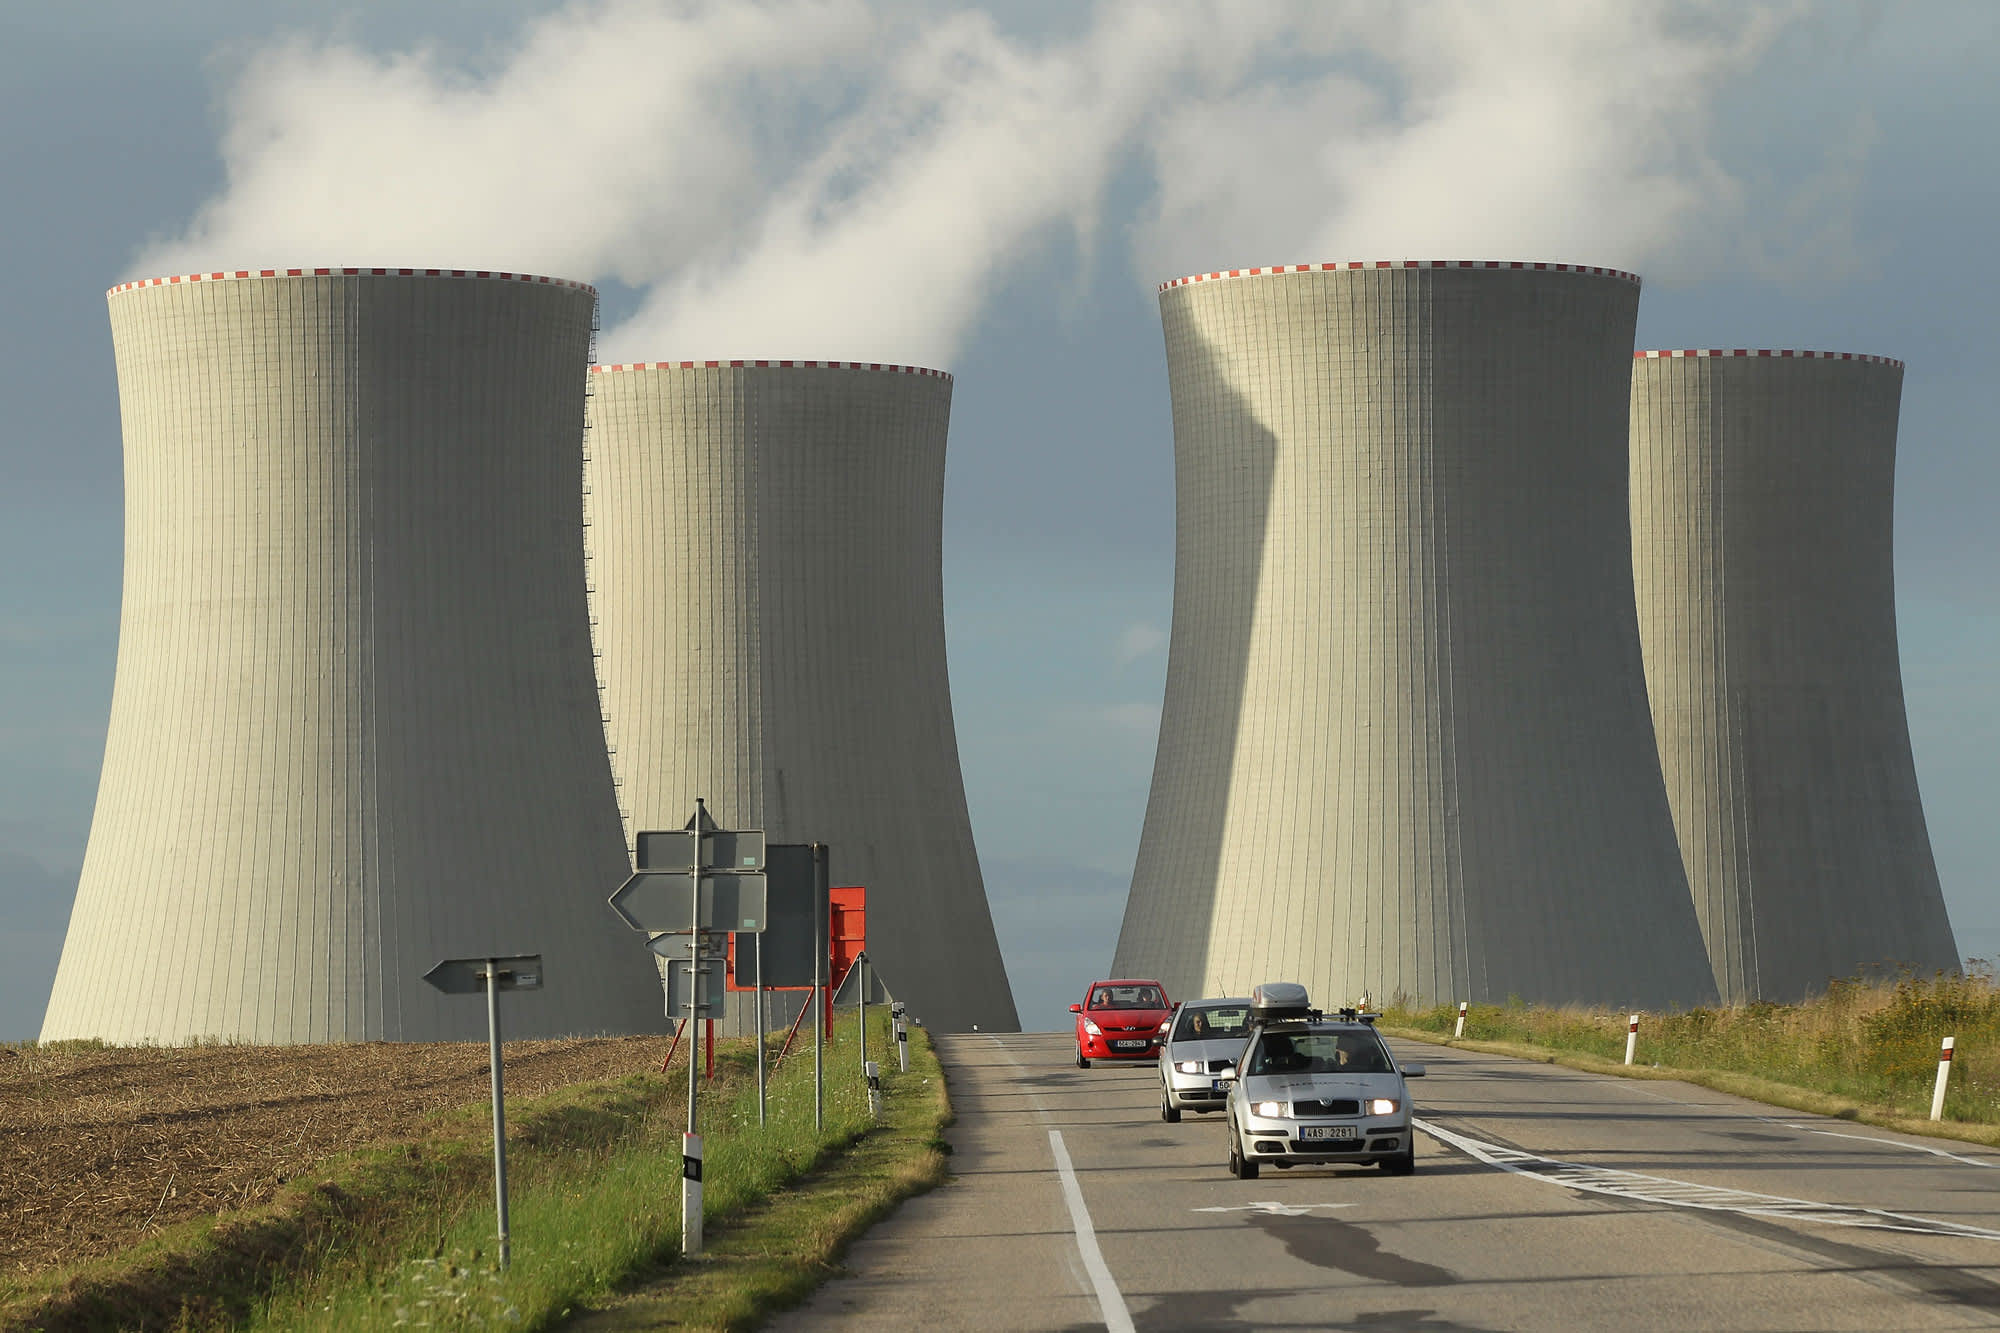 Czech nuclear plant in hot water after holding bikini contest for